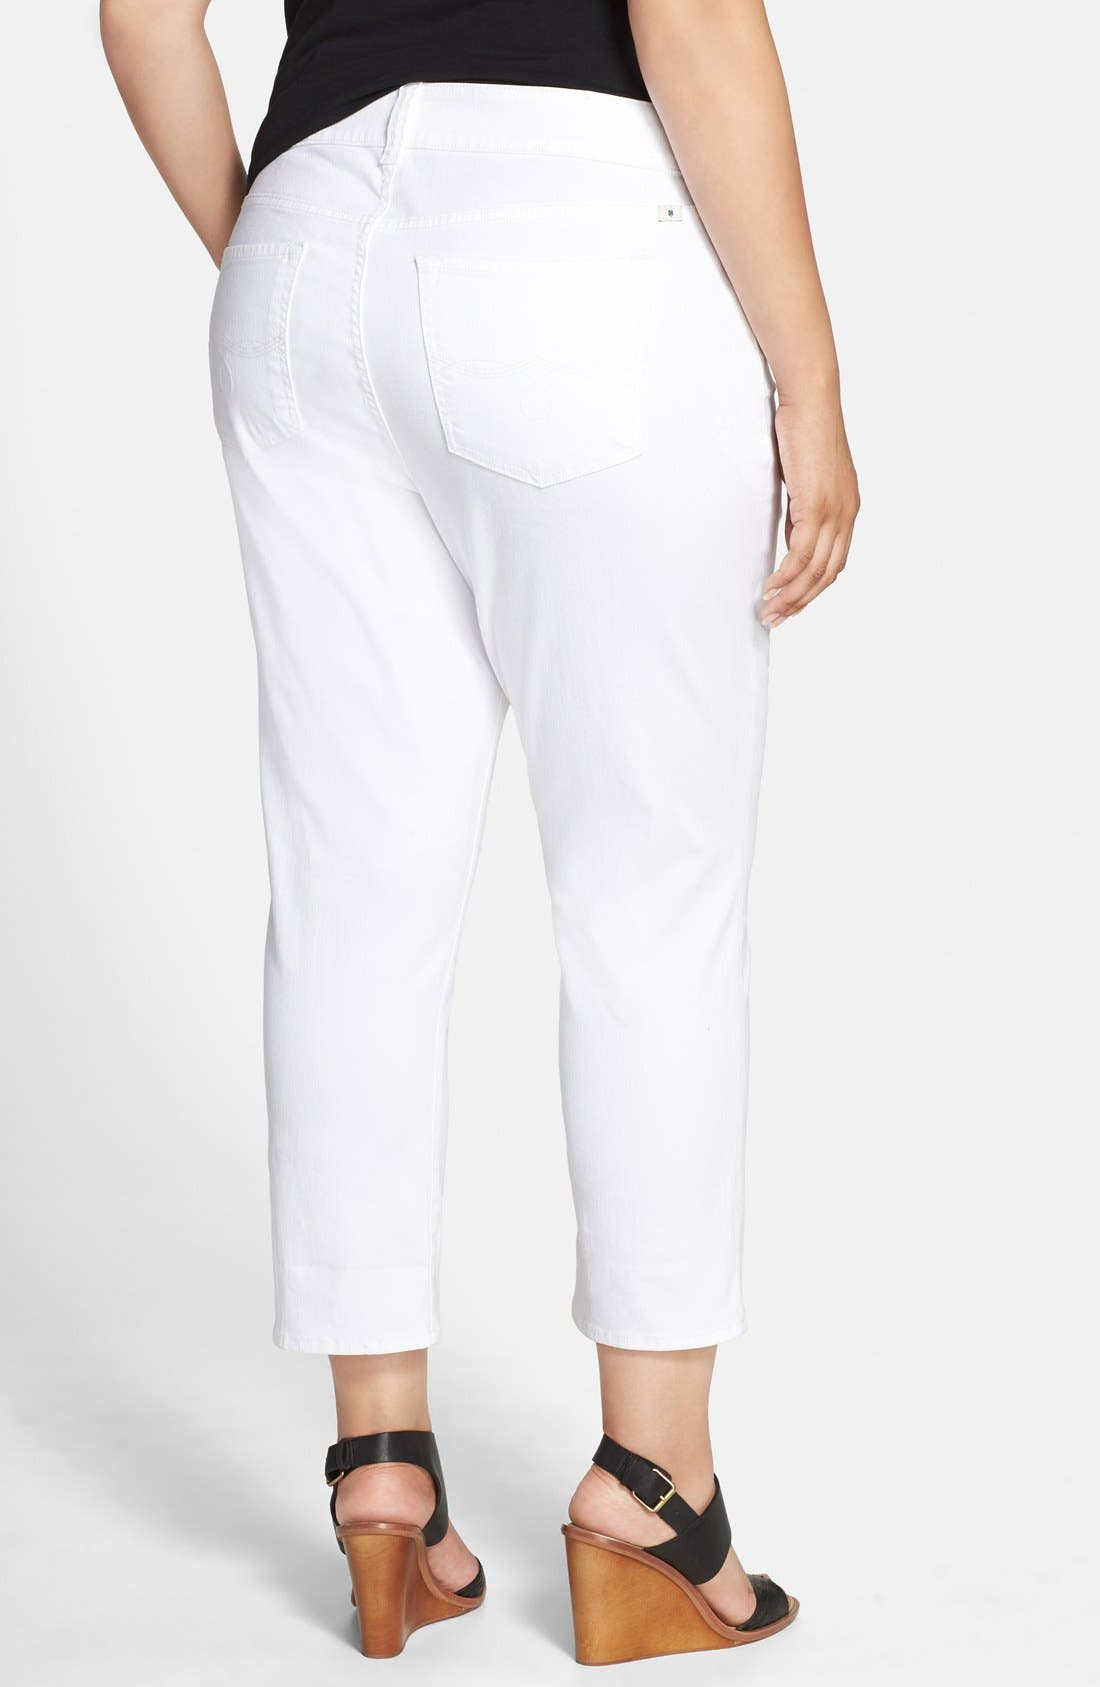 LUCKY BRAND, 'Emma' Stretch Crop Jeans, Alternate thumbnail 4, color, 110